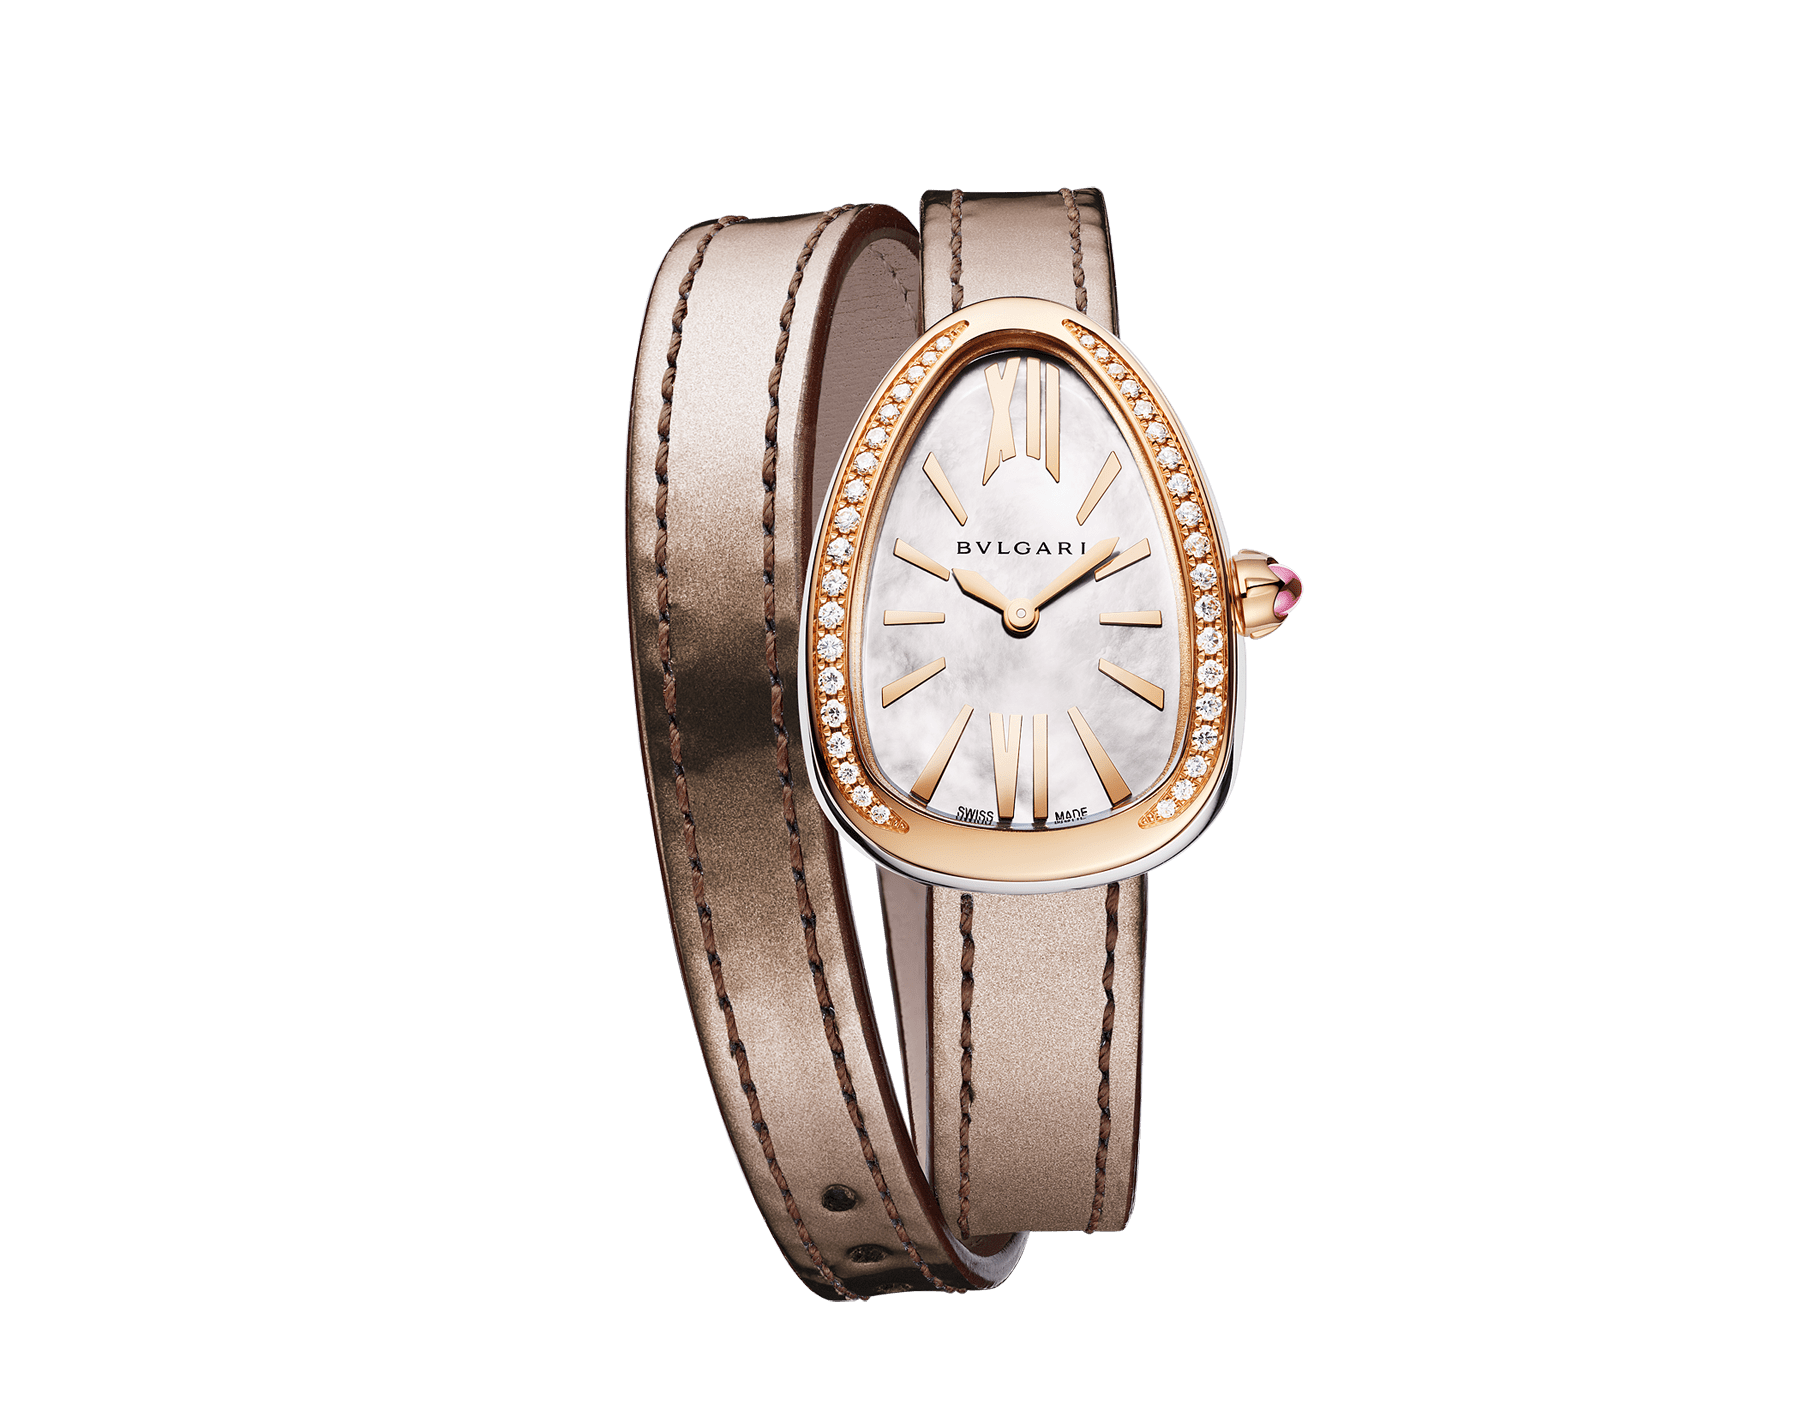 Serpenti watch with stainless steel case, 18 kt rose gold bezel set with round brilliant-cut diamonds, white mother-of-pearl dial and interchangeable double spiral bracelet in brown leather 103059 image 1